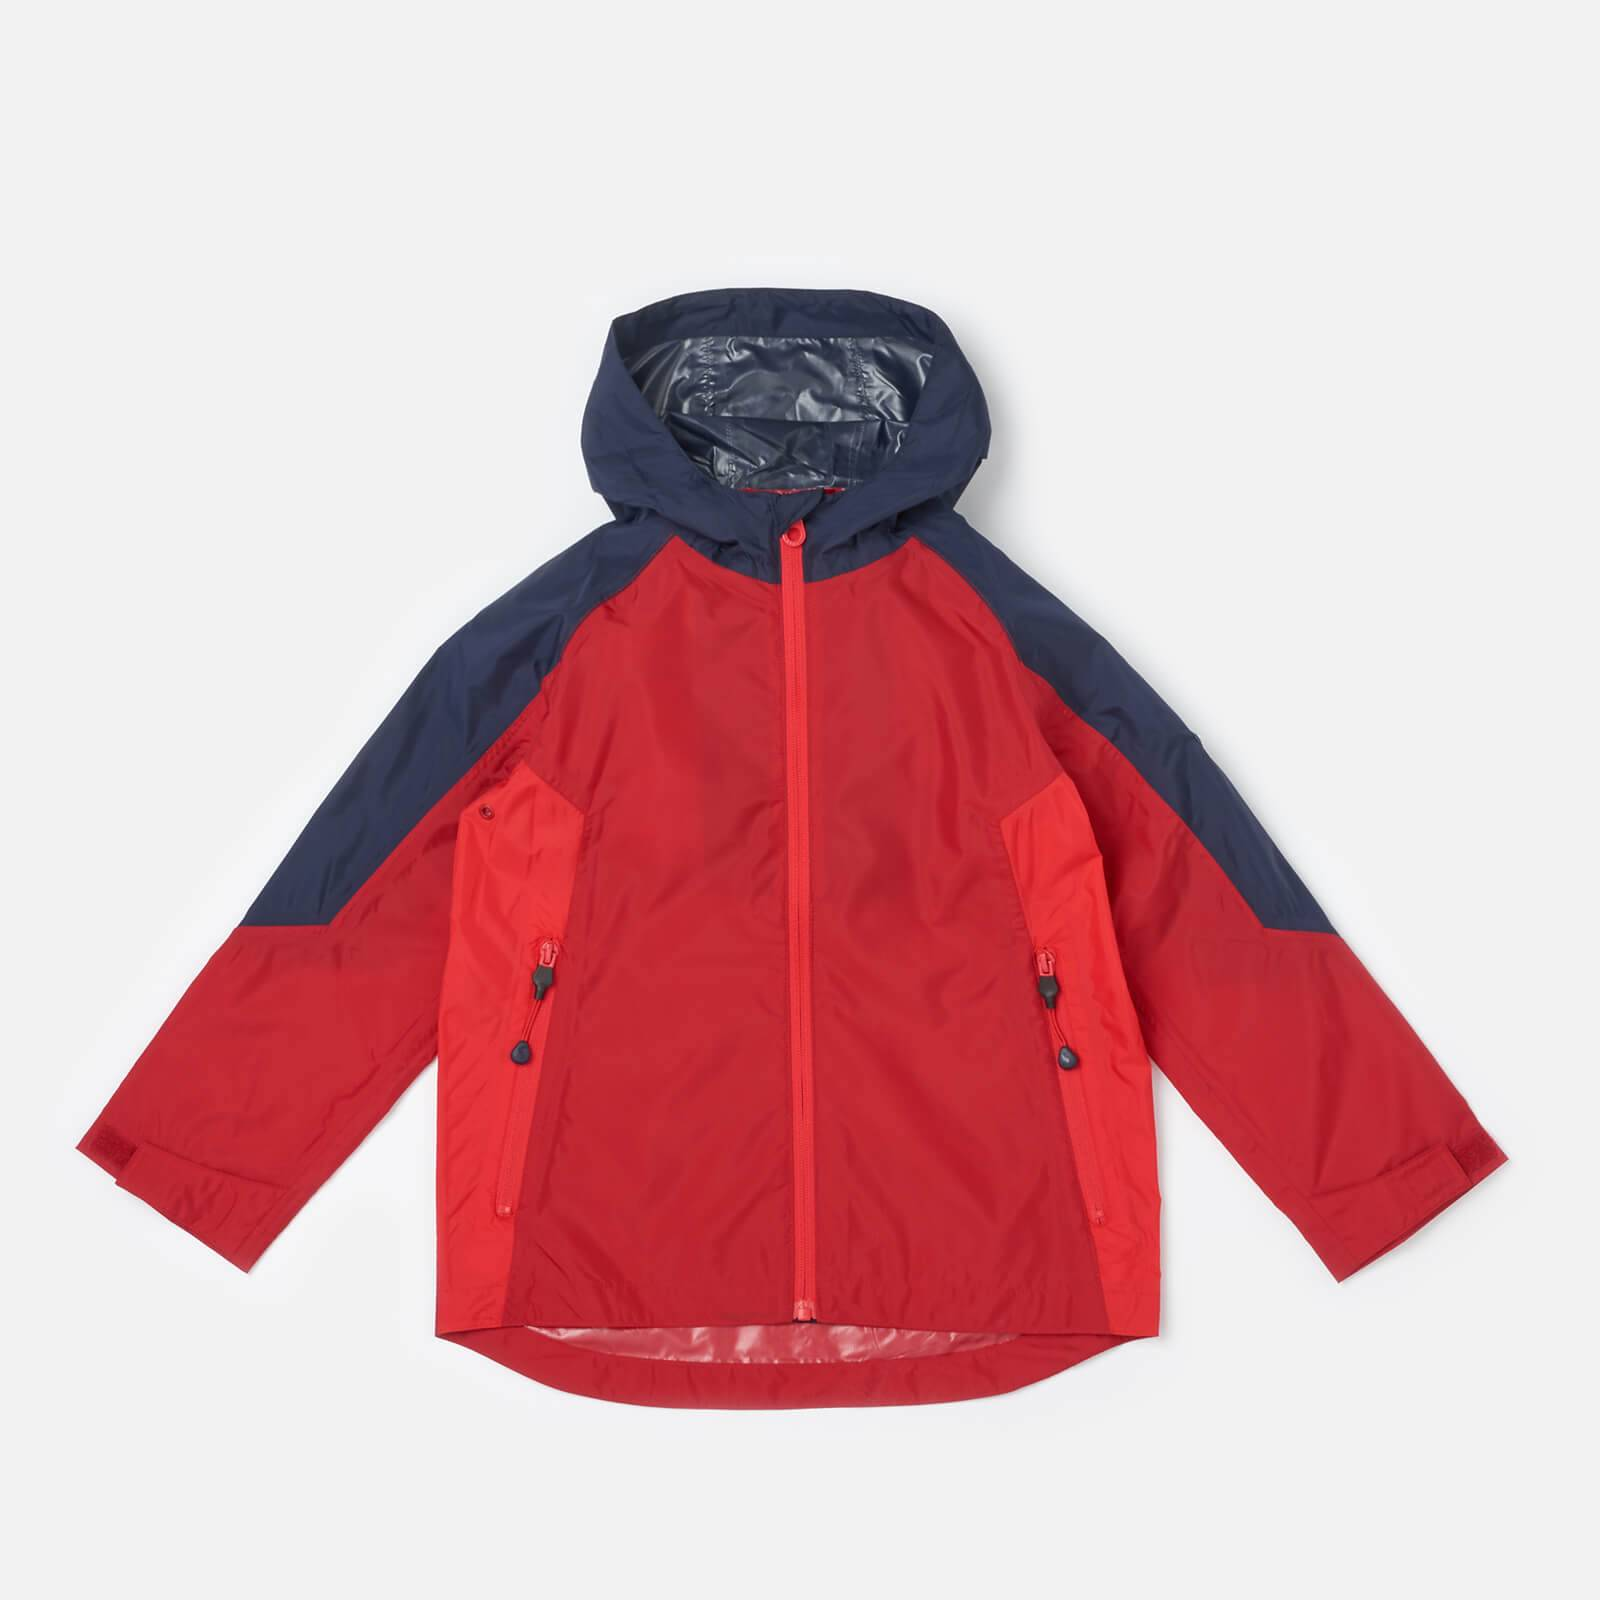 Joules Boys' Dalton Waterproof Shell Jacket - Red - 5 Years - Red